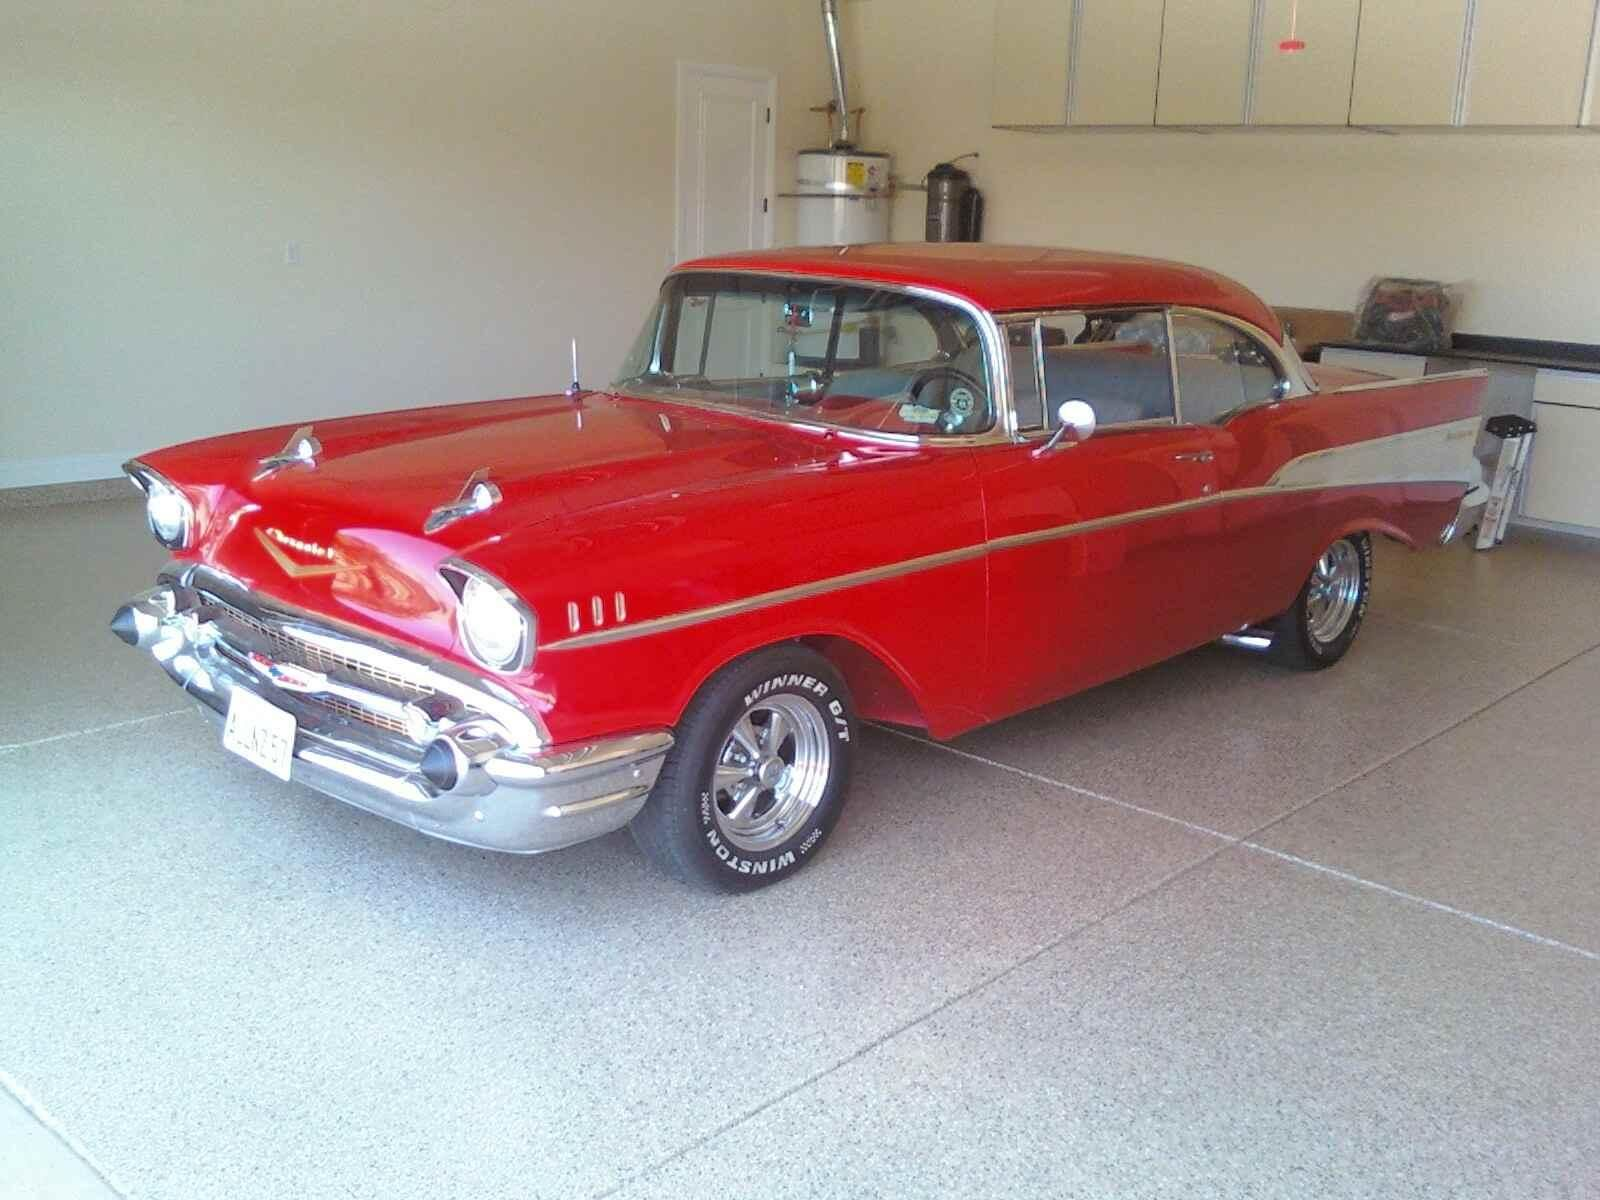 Rebuilt This Bad Boy With My Dad 1957 Chevrolet Bel Air 2 Door Hard Top 57 Chevy Bel Air Chevrolet Bel Air Chevy Bel Air